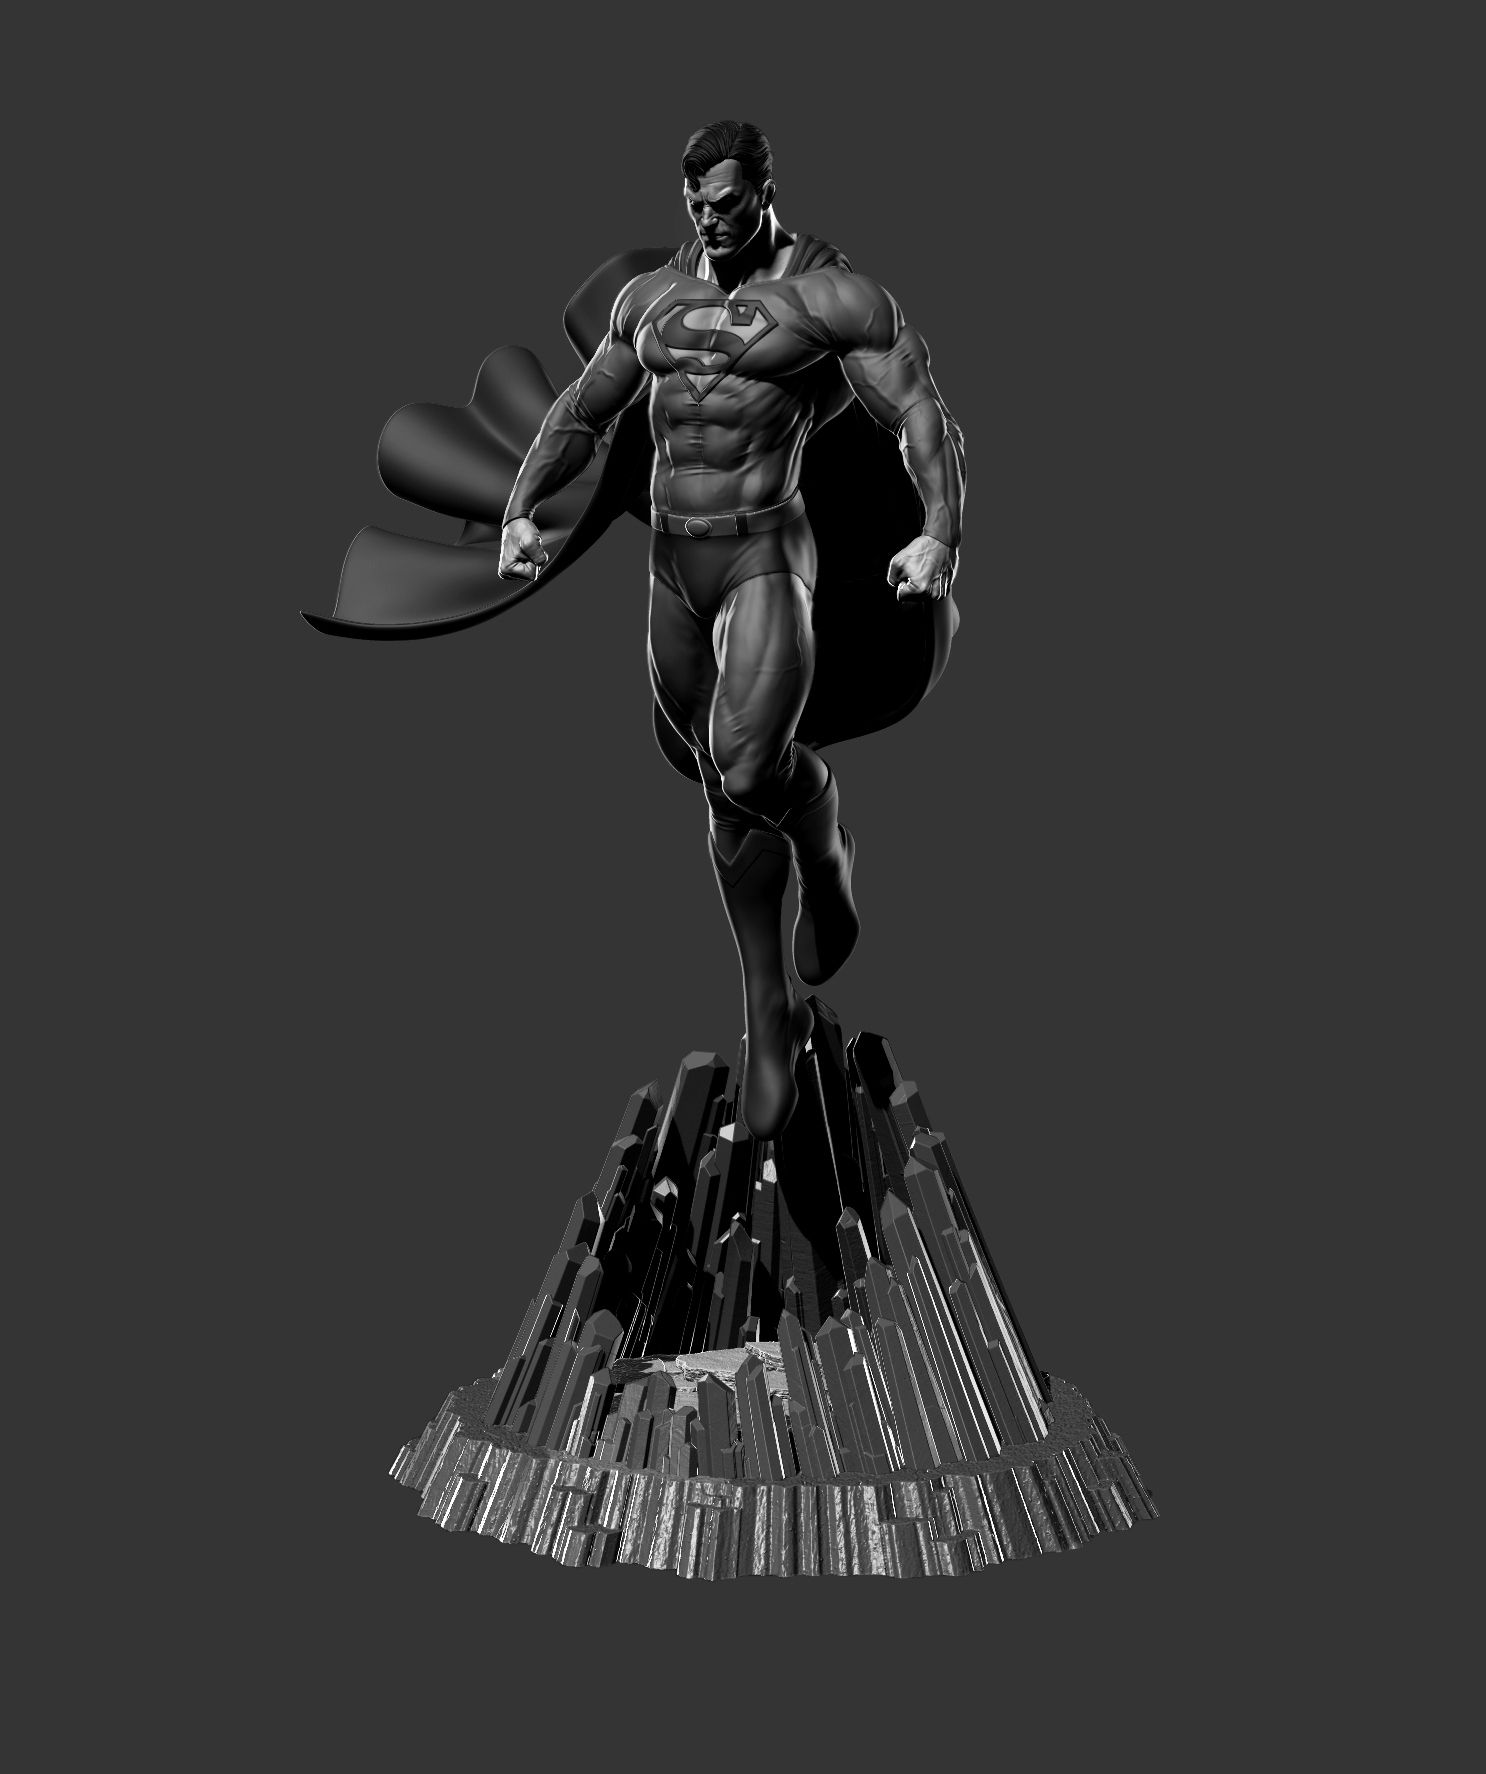 Character Design Zbrush : Superman for d print zbrush sculpt by danma